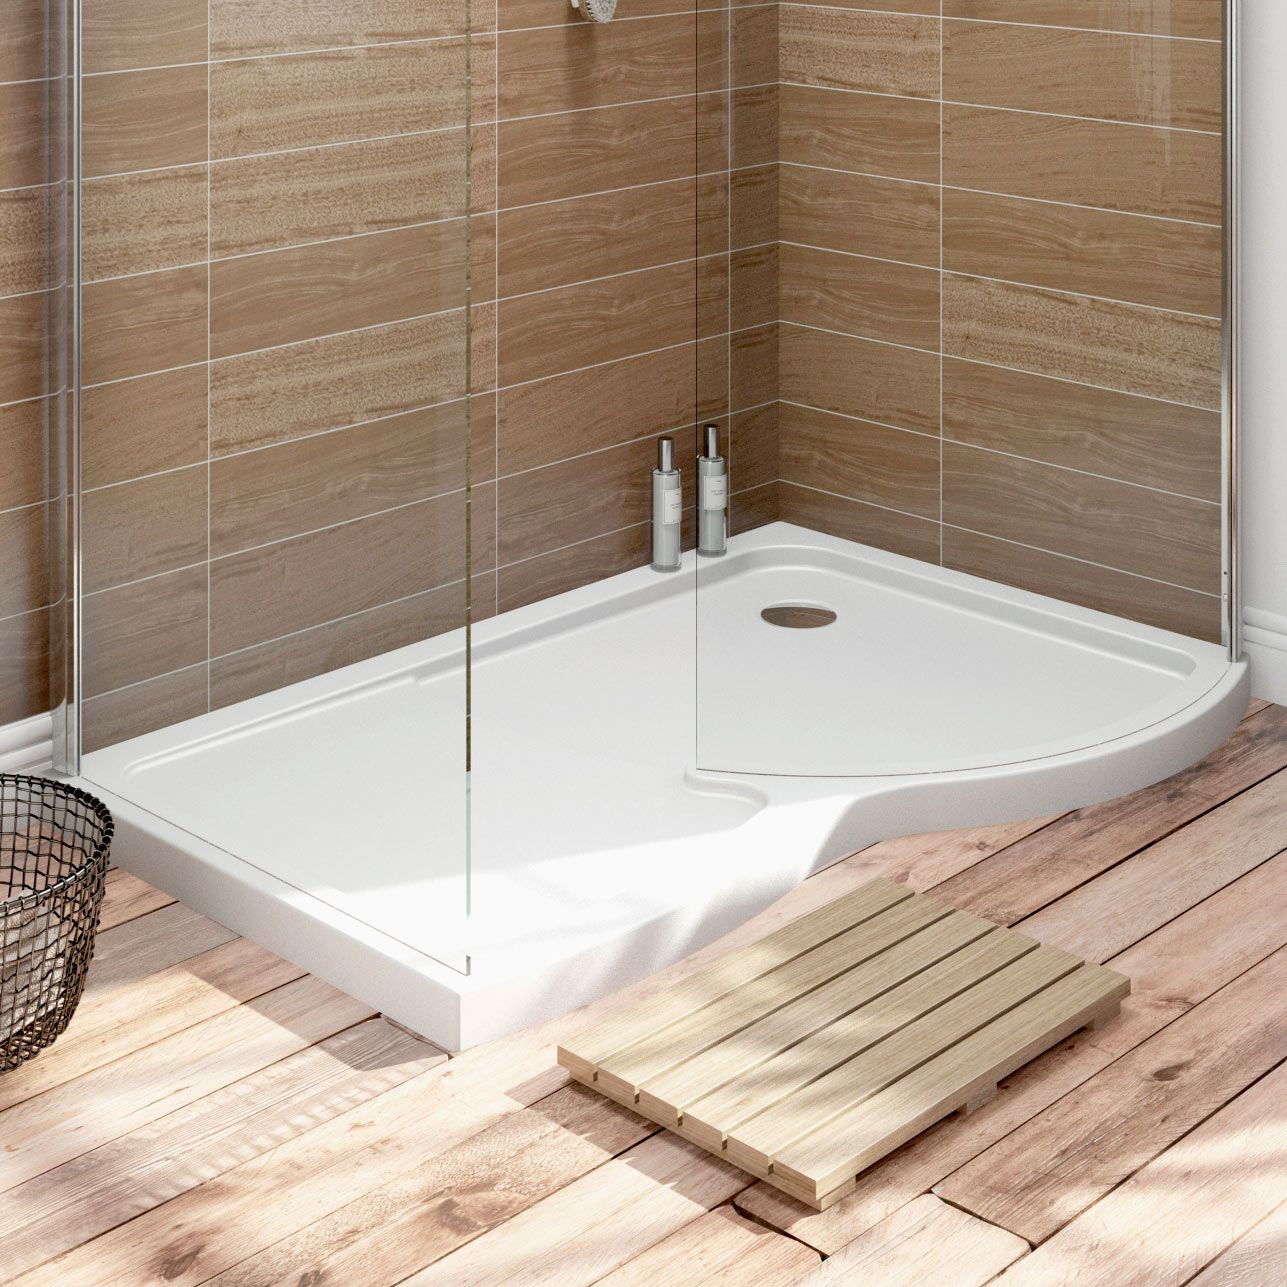 6mm curved right handed walk in shower enclosure with tray 1400 x ...